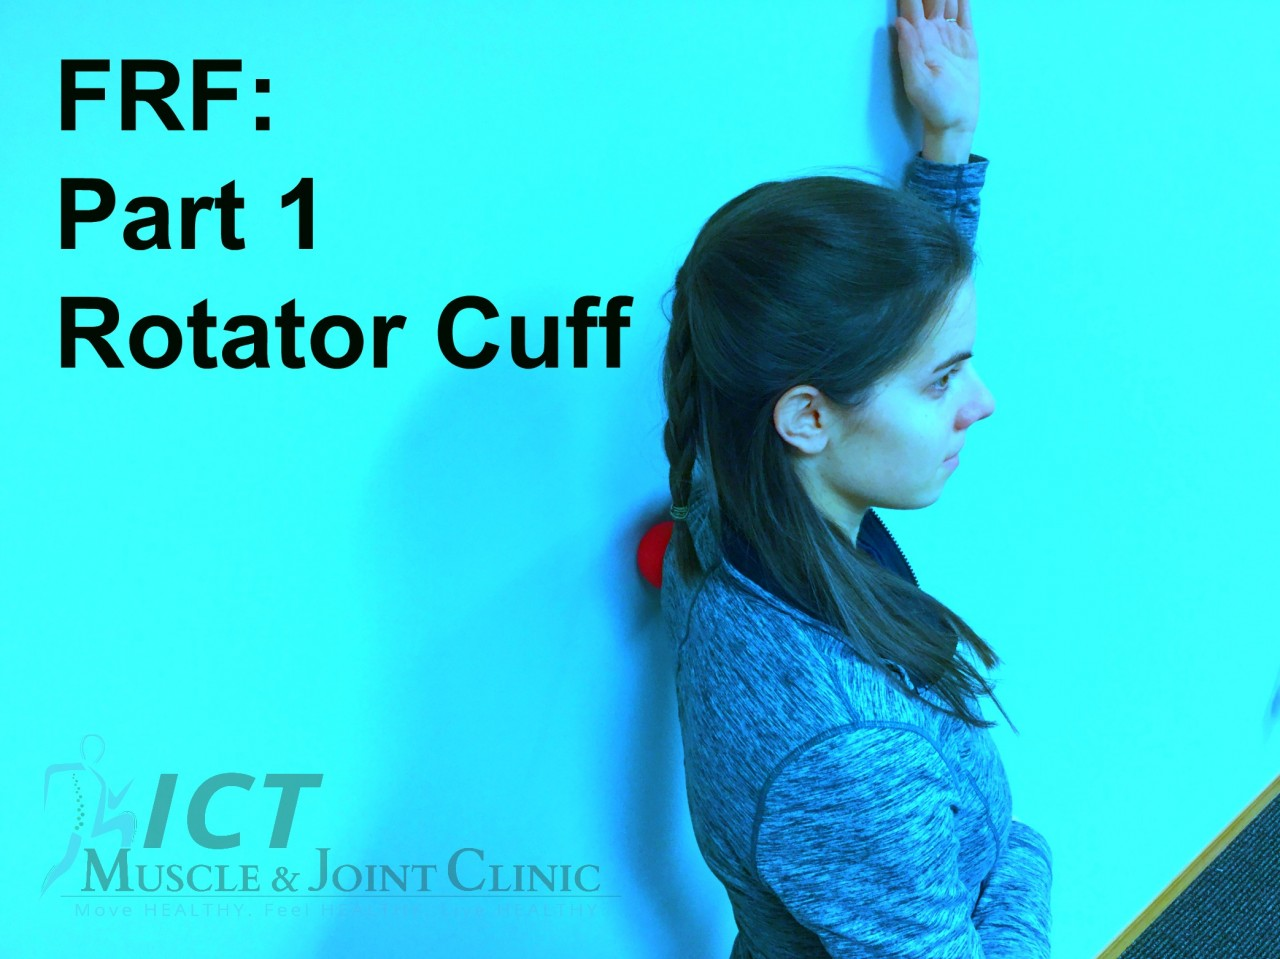 FRF: Part 1 - Rotator Cuff Muscles